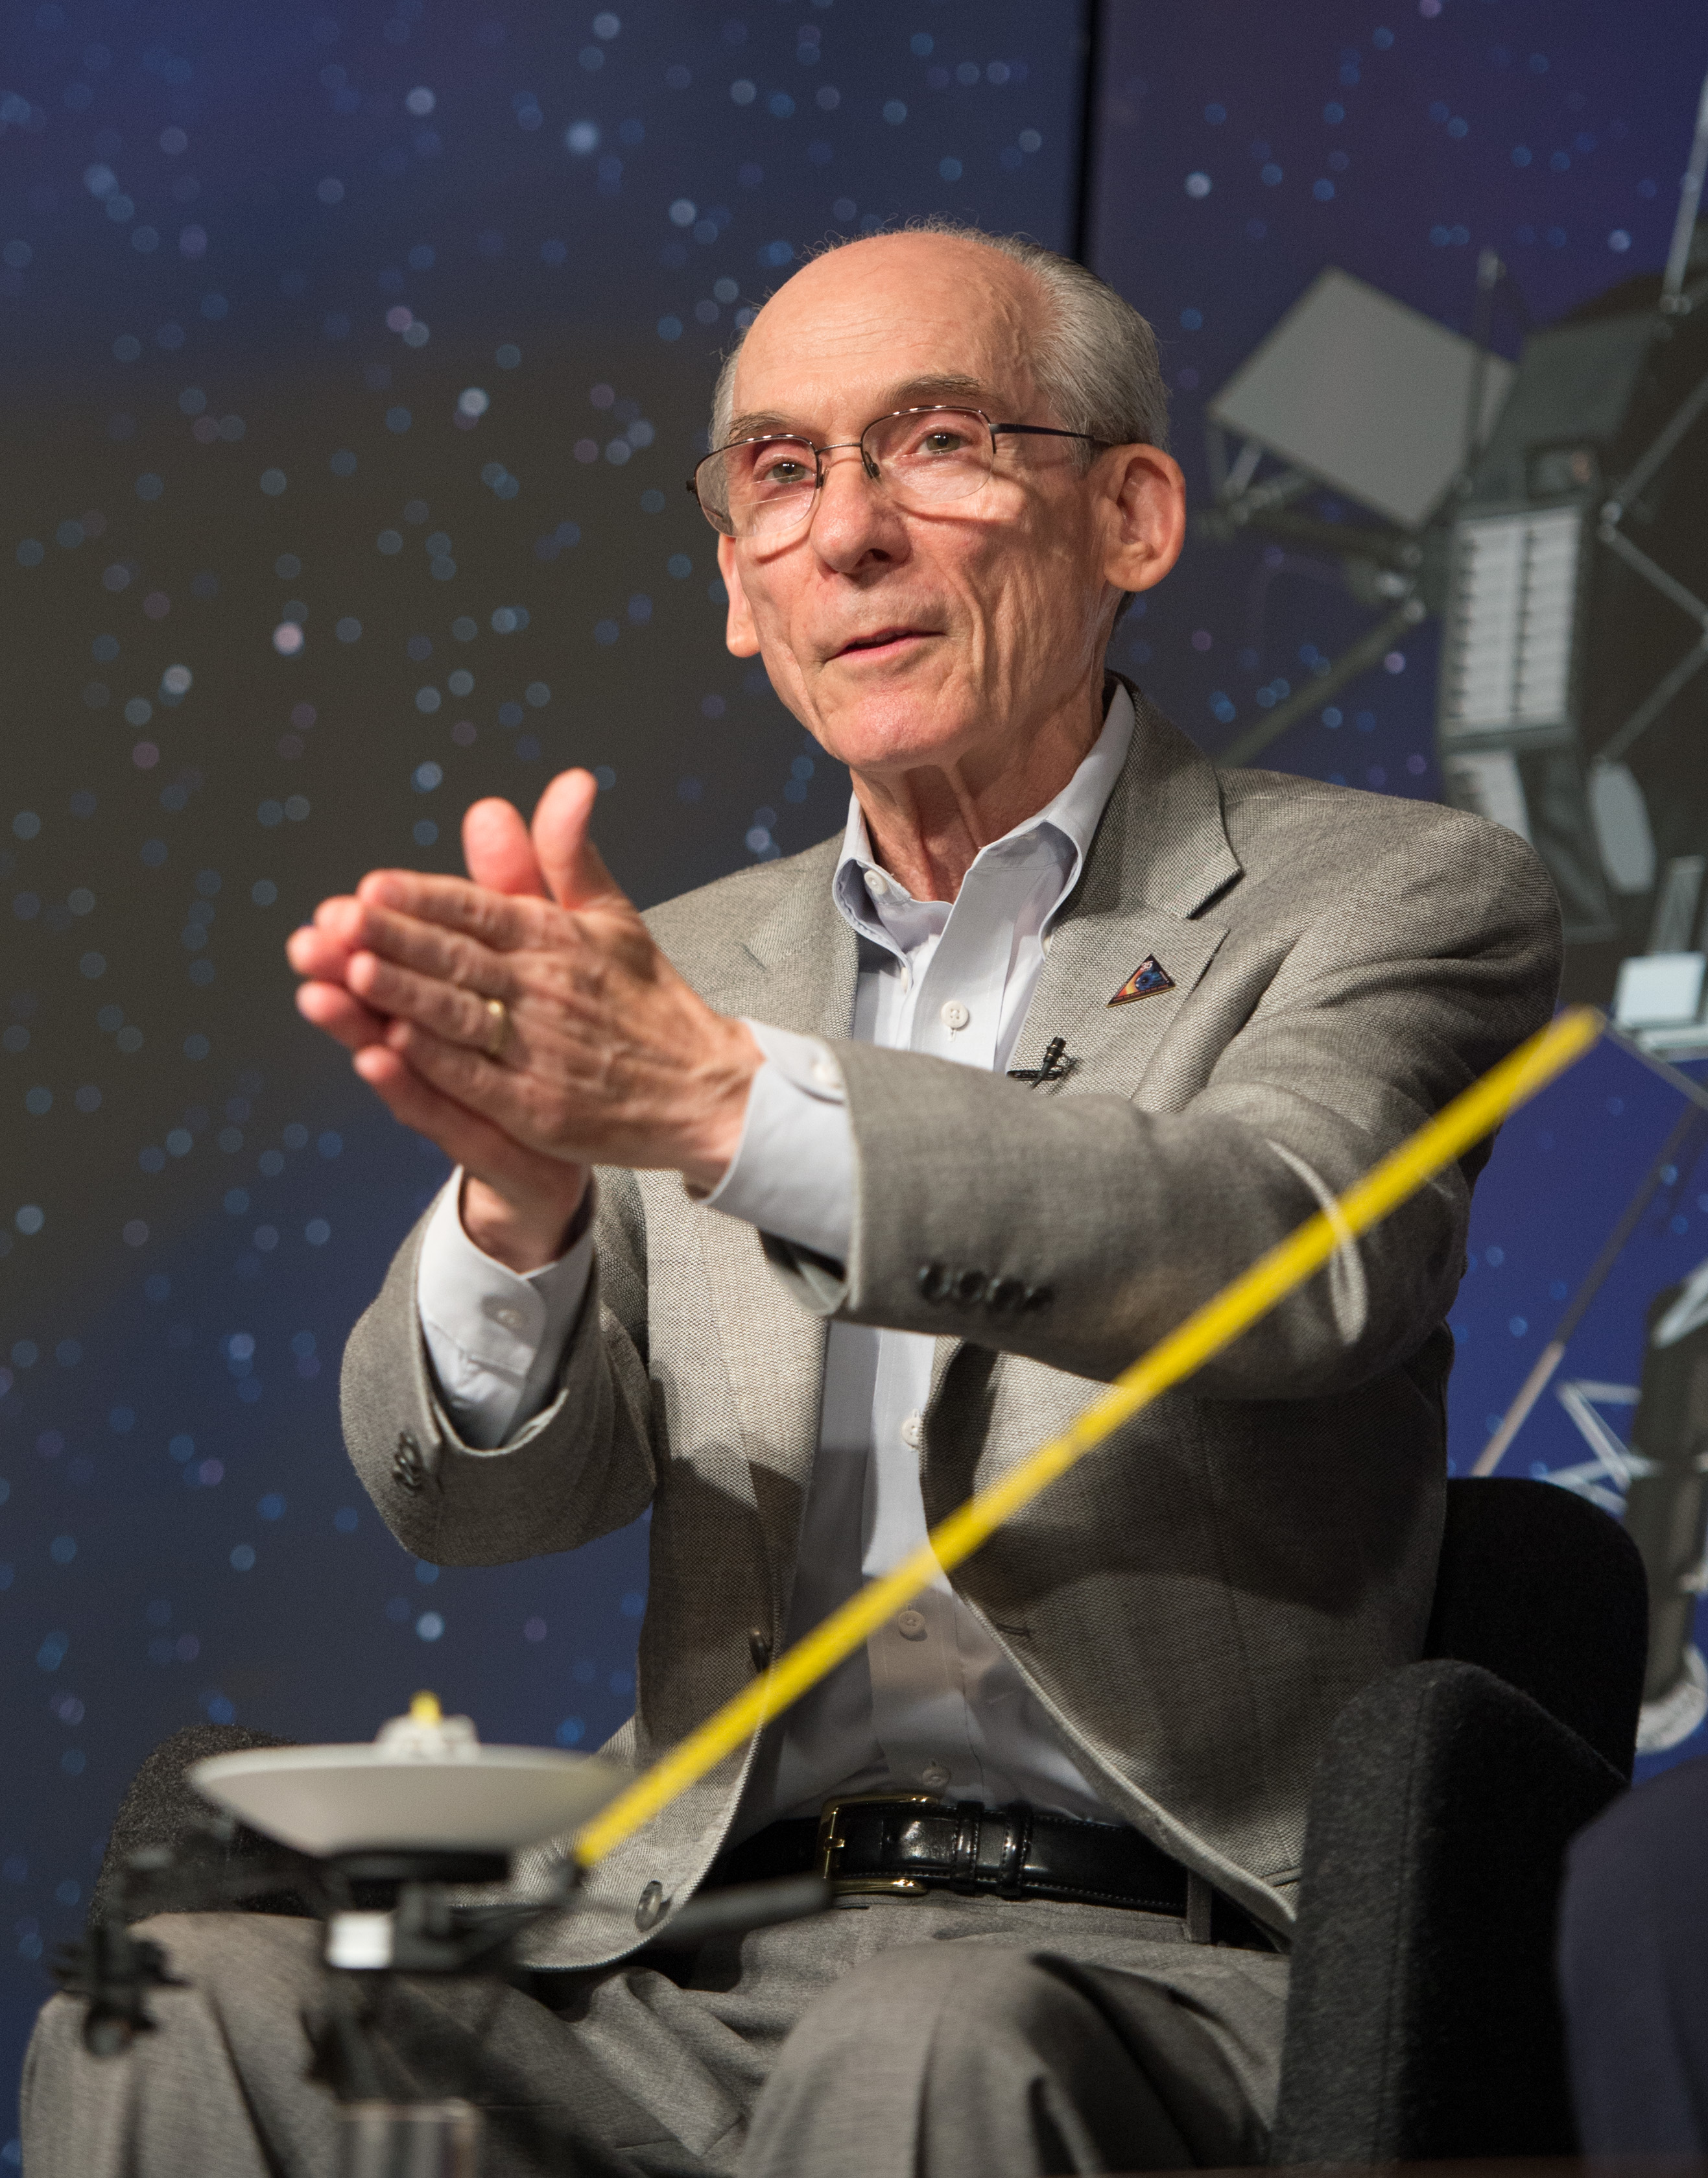 Voyager Project Scientist Ed Stone Speaks at Conference